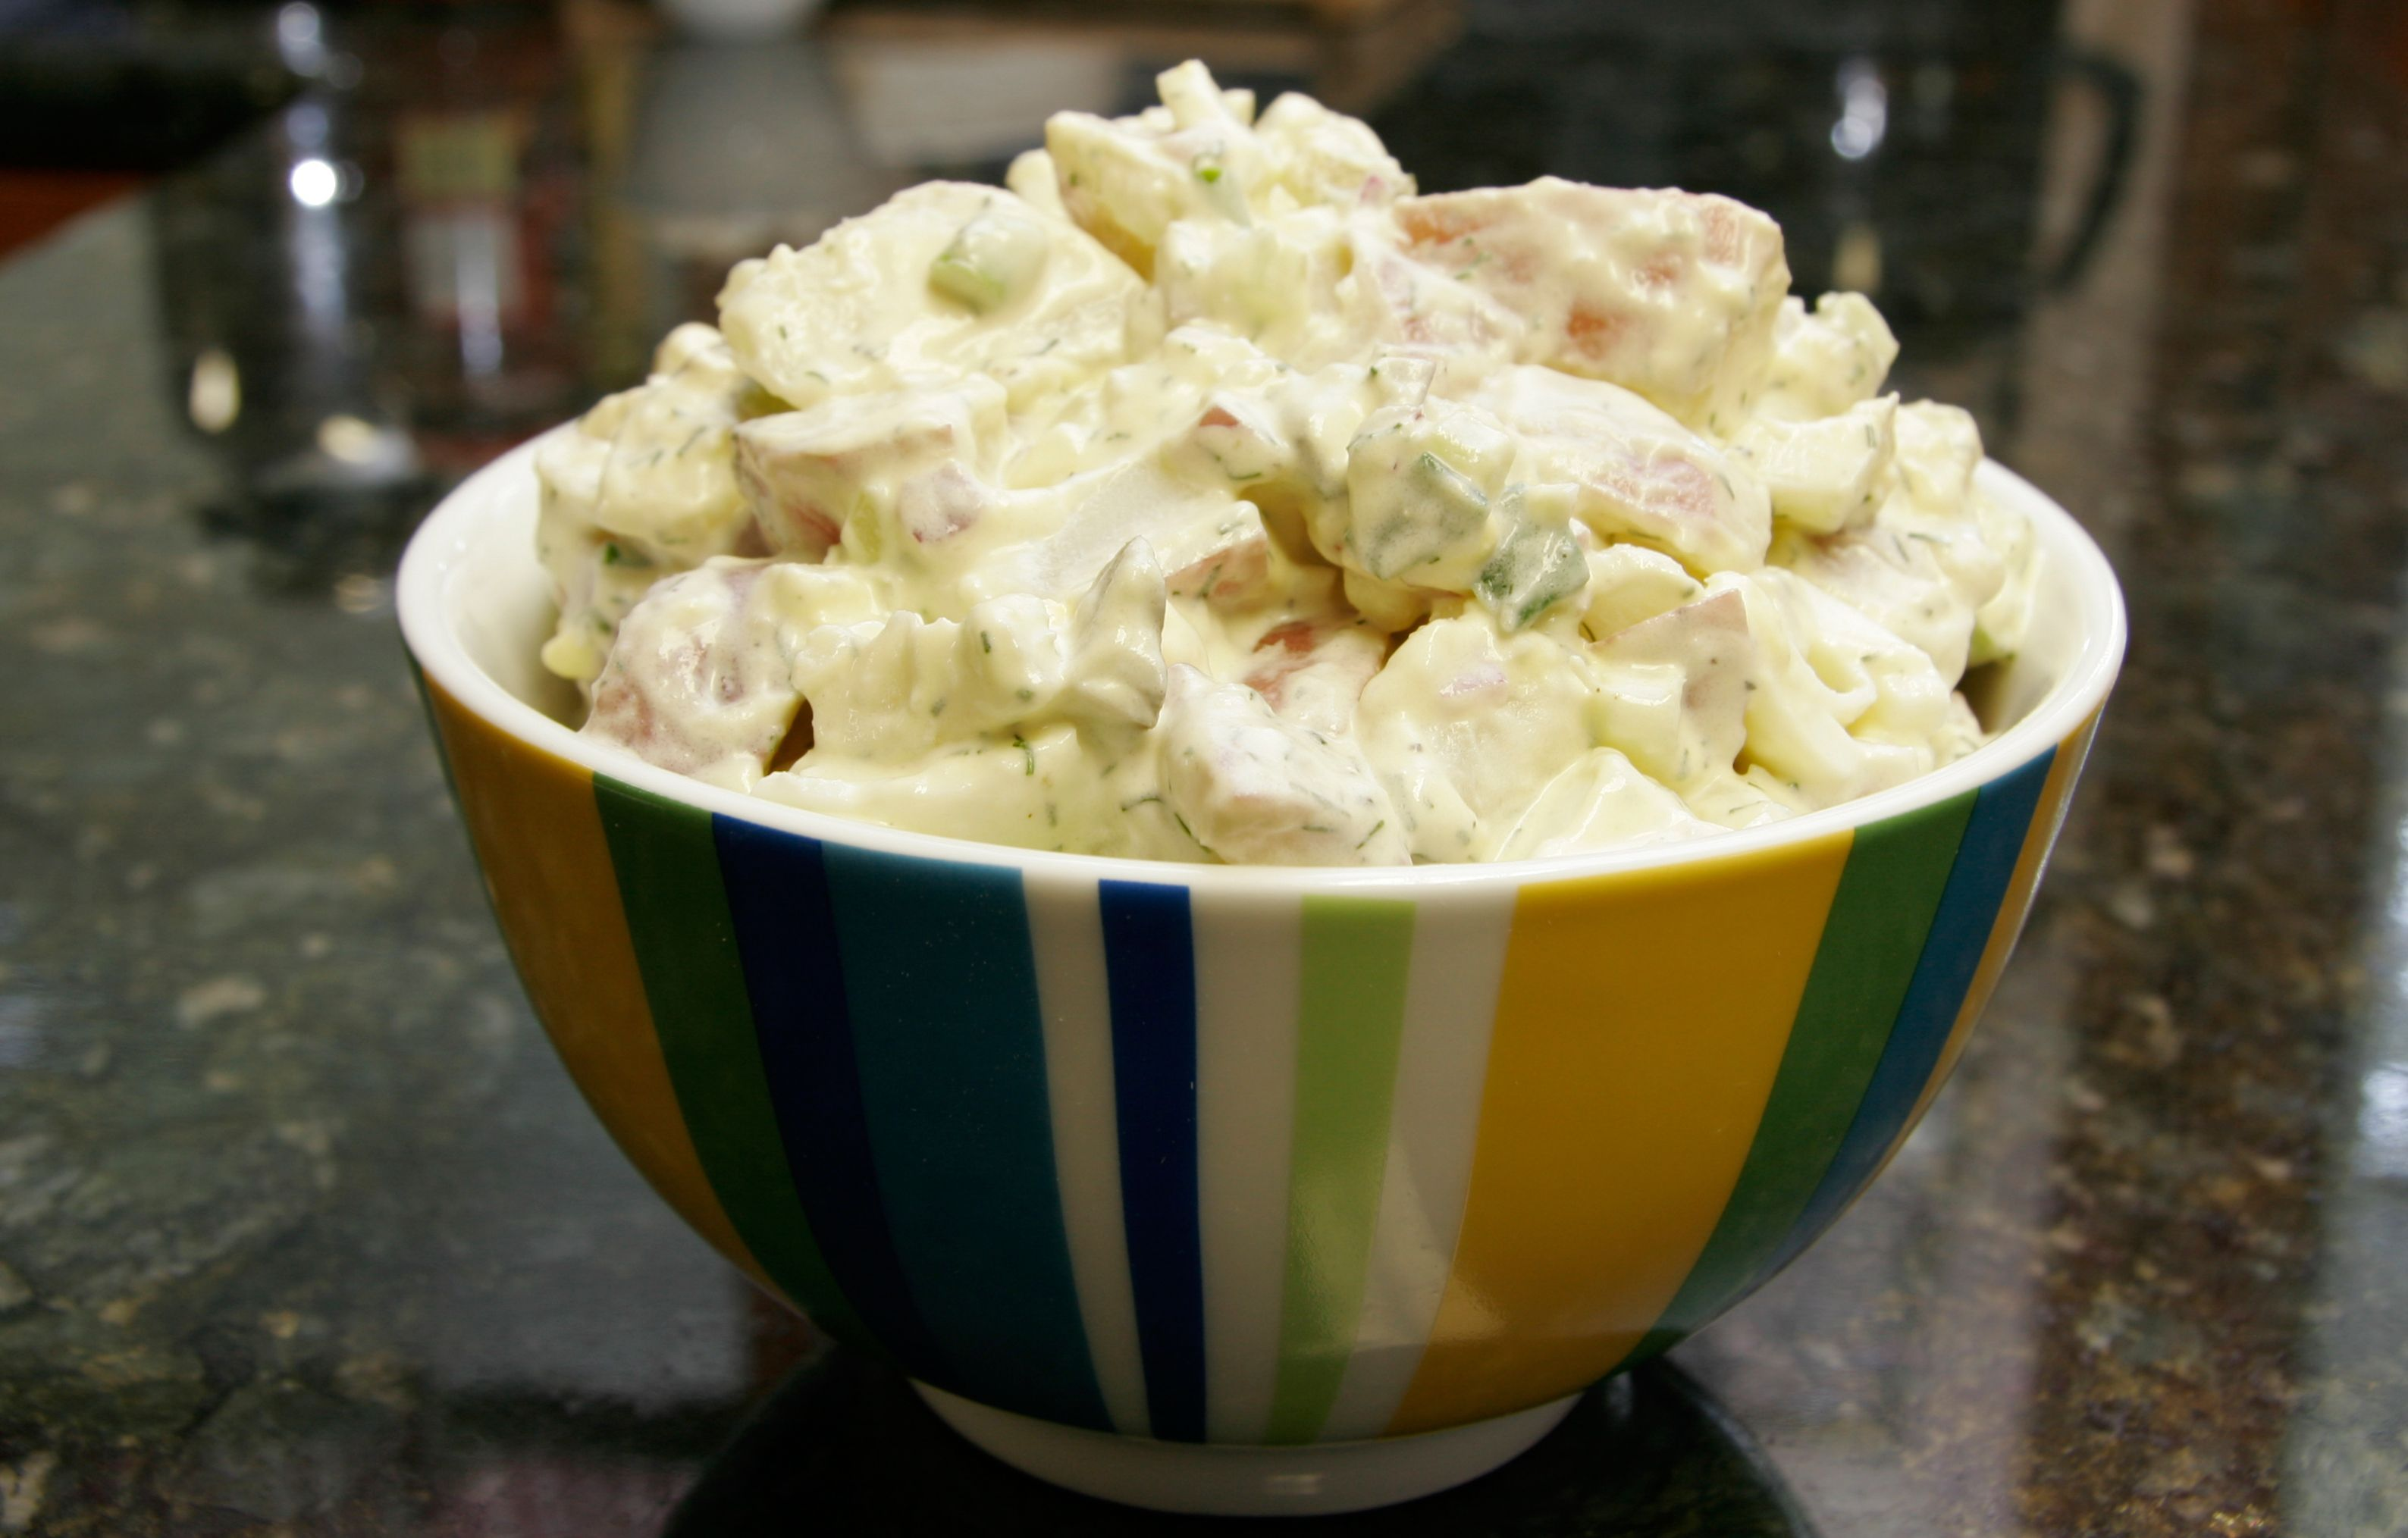 Creamy Potato And Egg Salad With A Tangy Sour Cream Dressing Recipe In 2020 Sour Cream Potato Salad Sour Cream Potatoes Creamed Potatoes